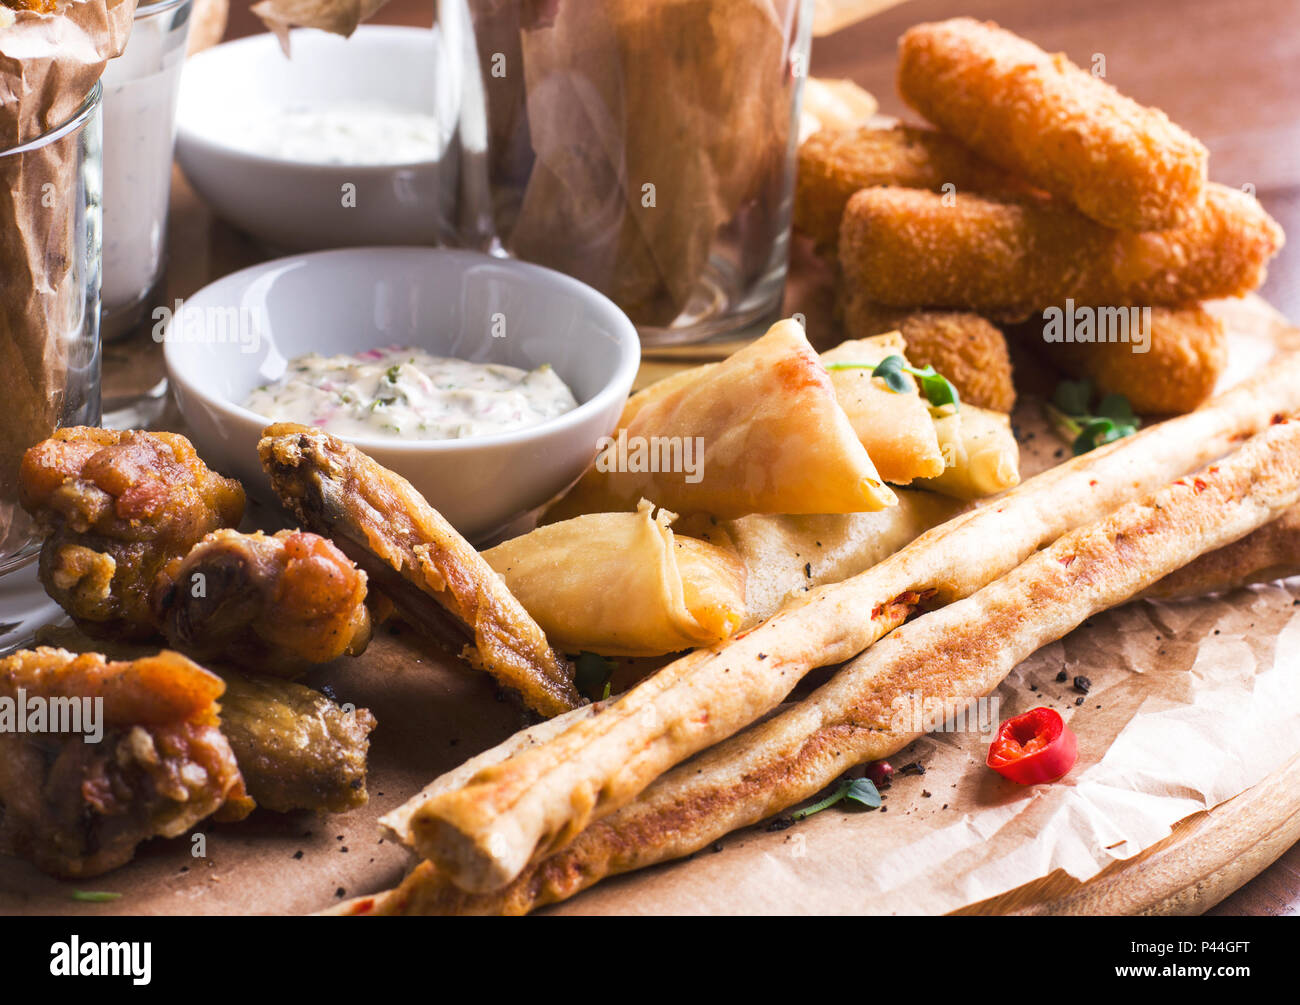 Spicy baked chicken wings, bread sticks with appetizers and sauces on round wooden Board Stock Photo